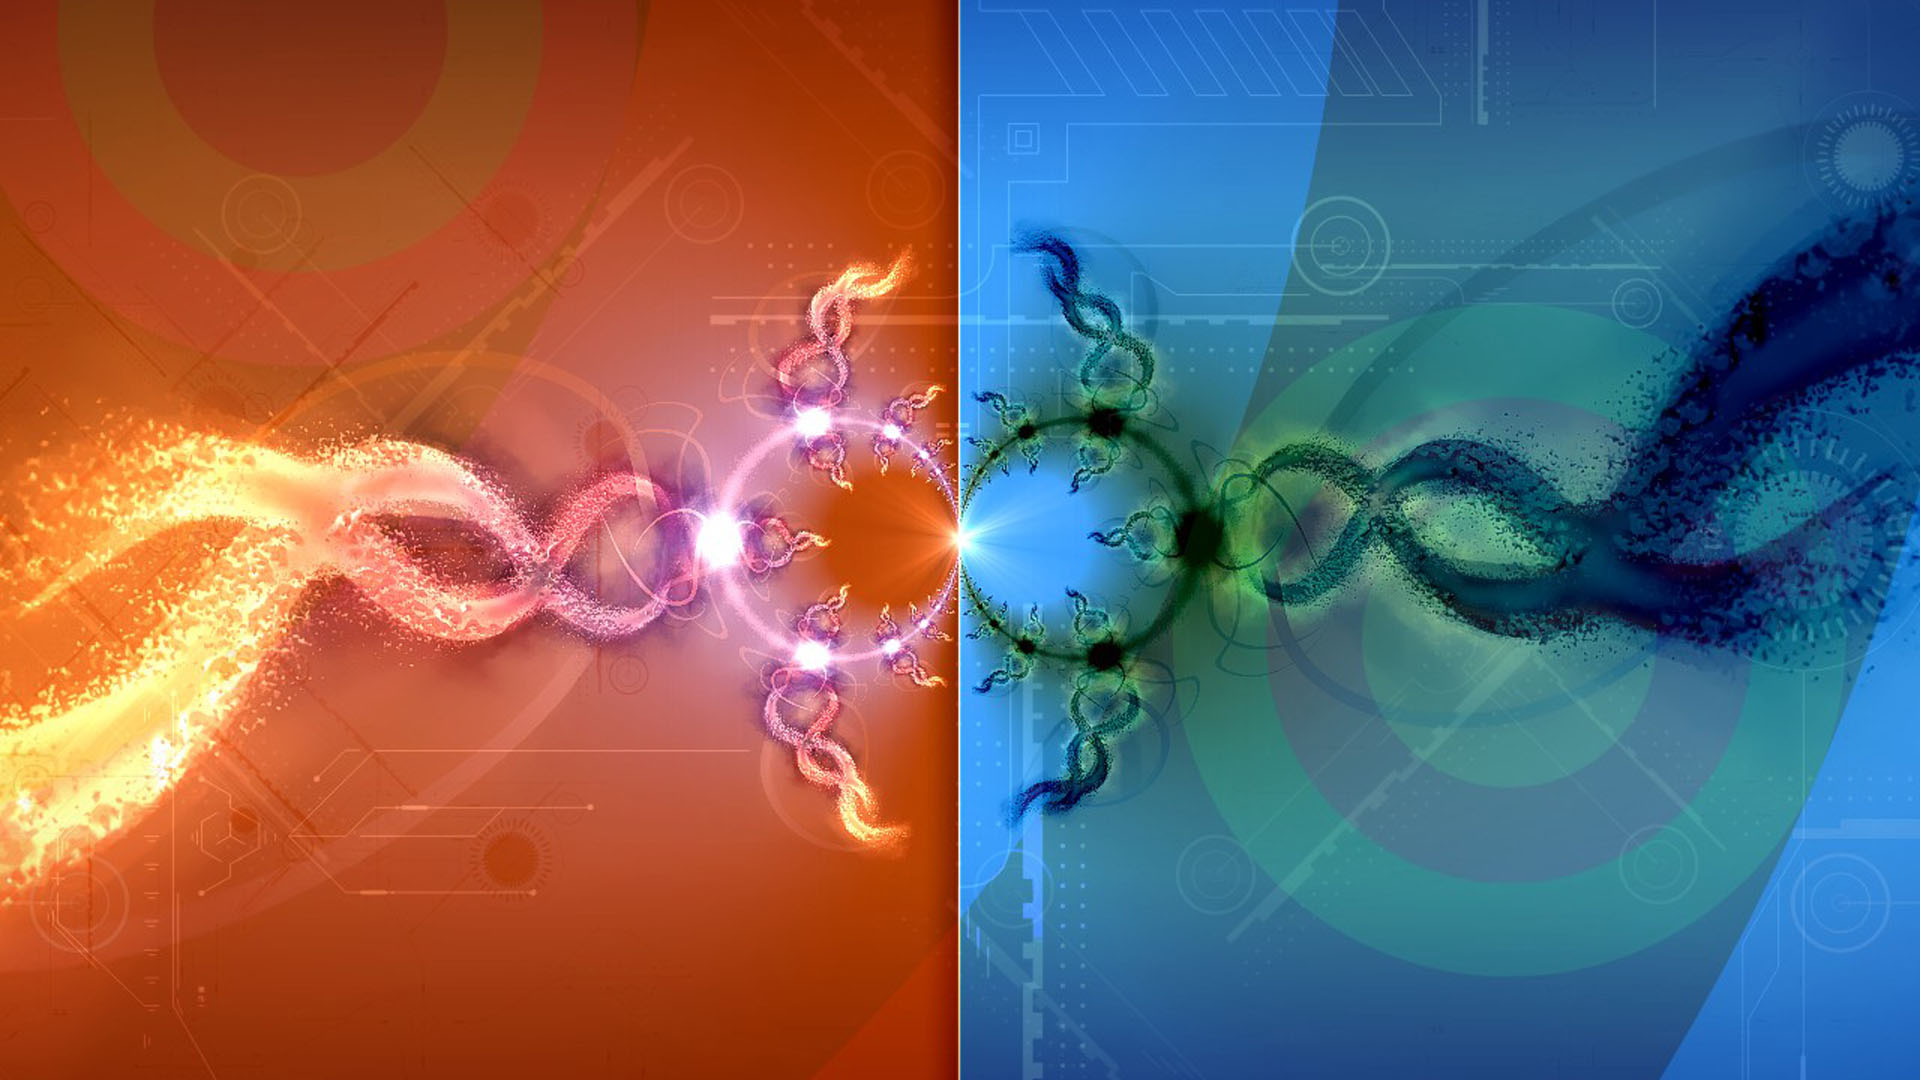 Collection Of Dual Screen Wallpaper Hd On Hdwallpapers Dual Monitor Wallpaper 1366x768 Hd 1920x1080 Wallpaper Teahub Io